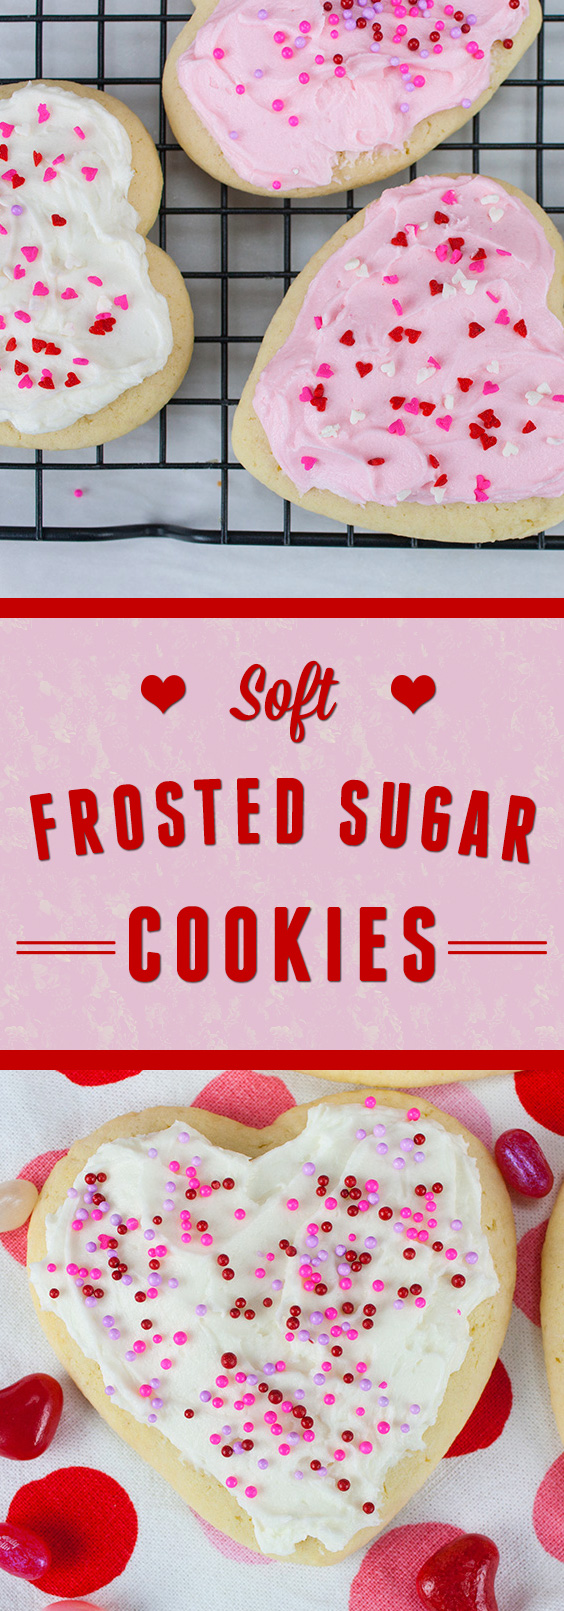 Soft Frosted Sugar Cookies - Pillowy soft sugar cookies loaded with perfectly sweet frosting!